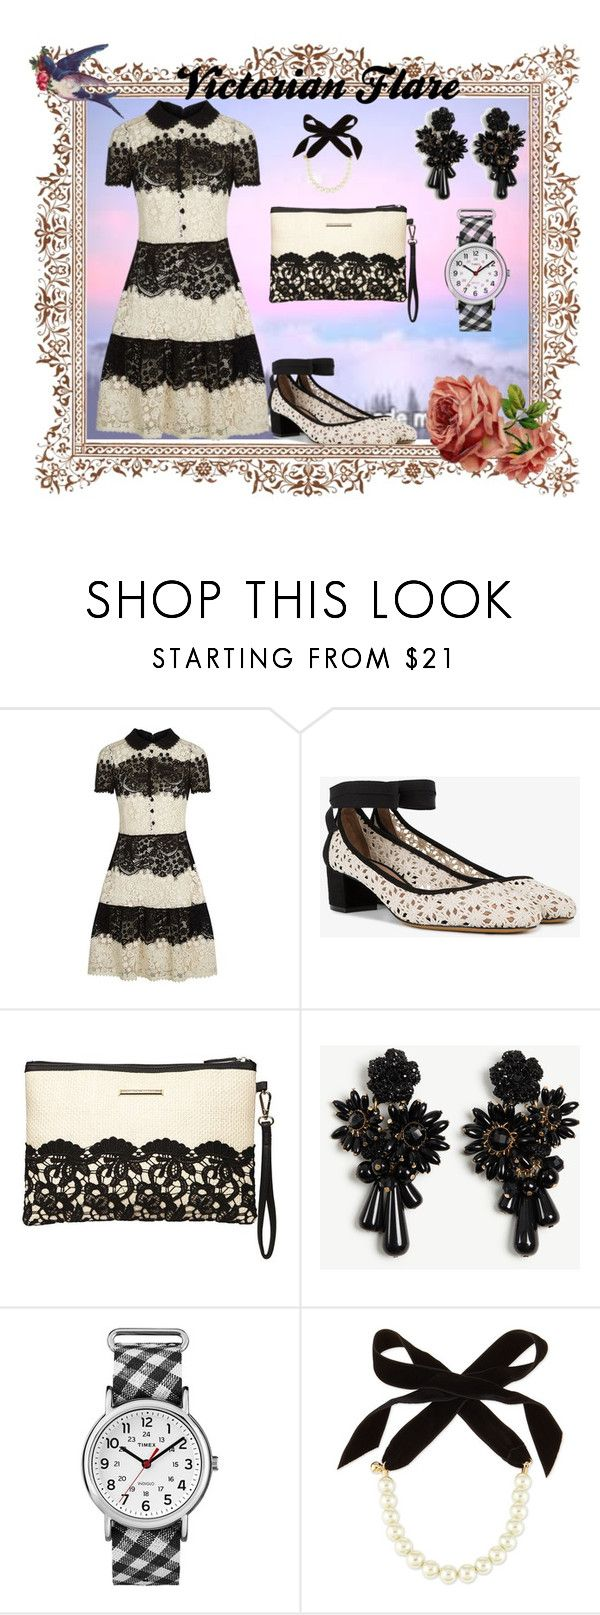 """Victorian Flare"" by flowerbud77 ❤ liked on Polyvore featuring RED Valentino, Tabitha Simmons, Dorothy Perkins, Ann Taylor, Timex, Lulu Frost, blackandwhite, embroidered and victorian"